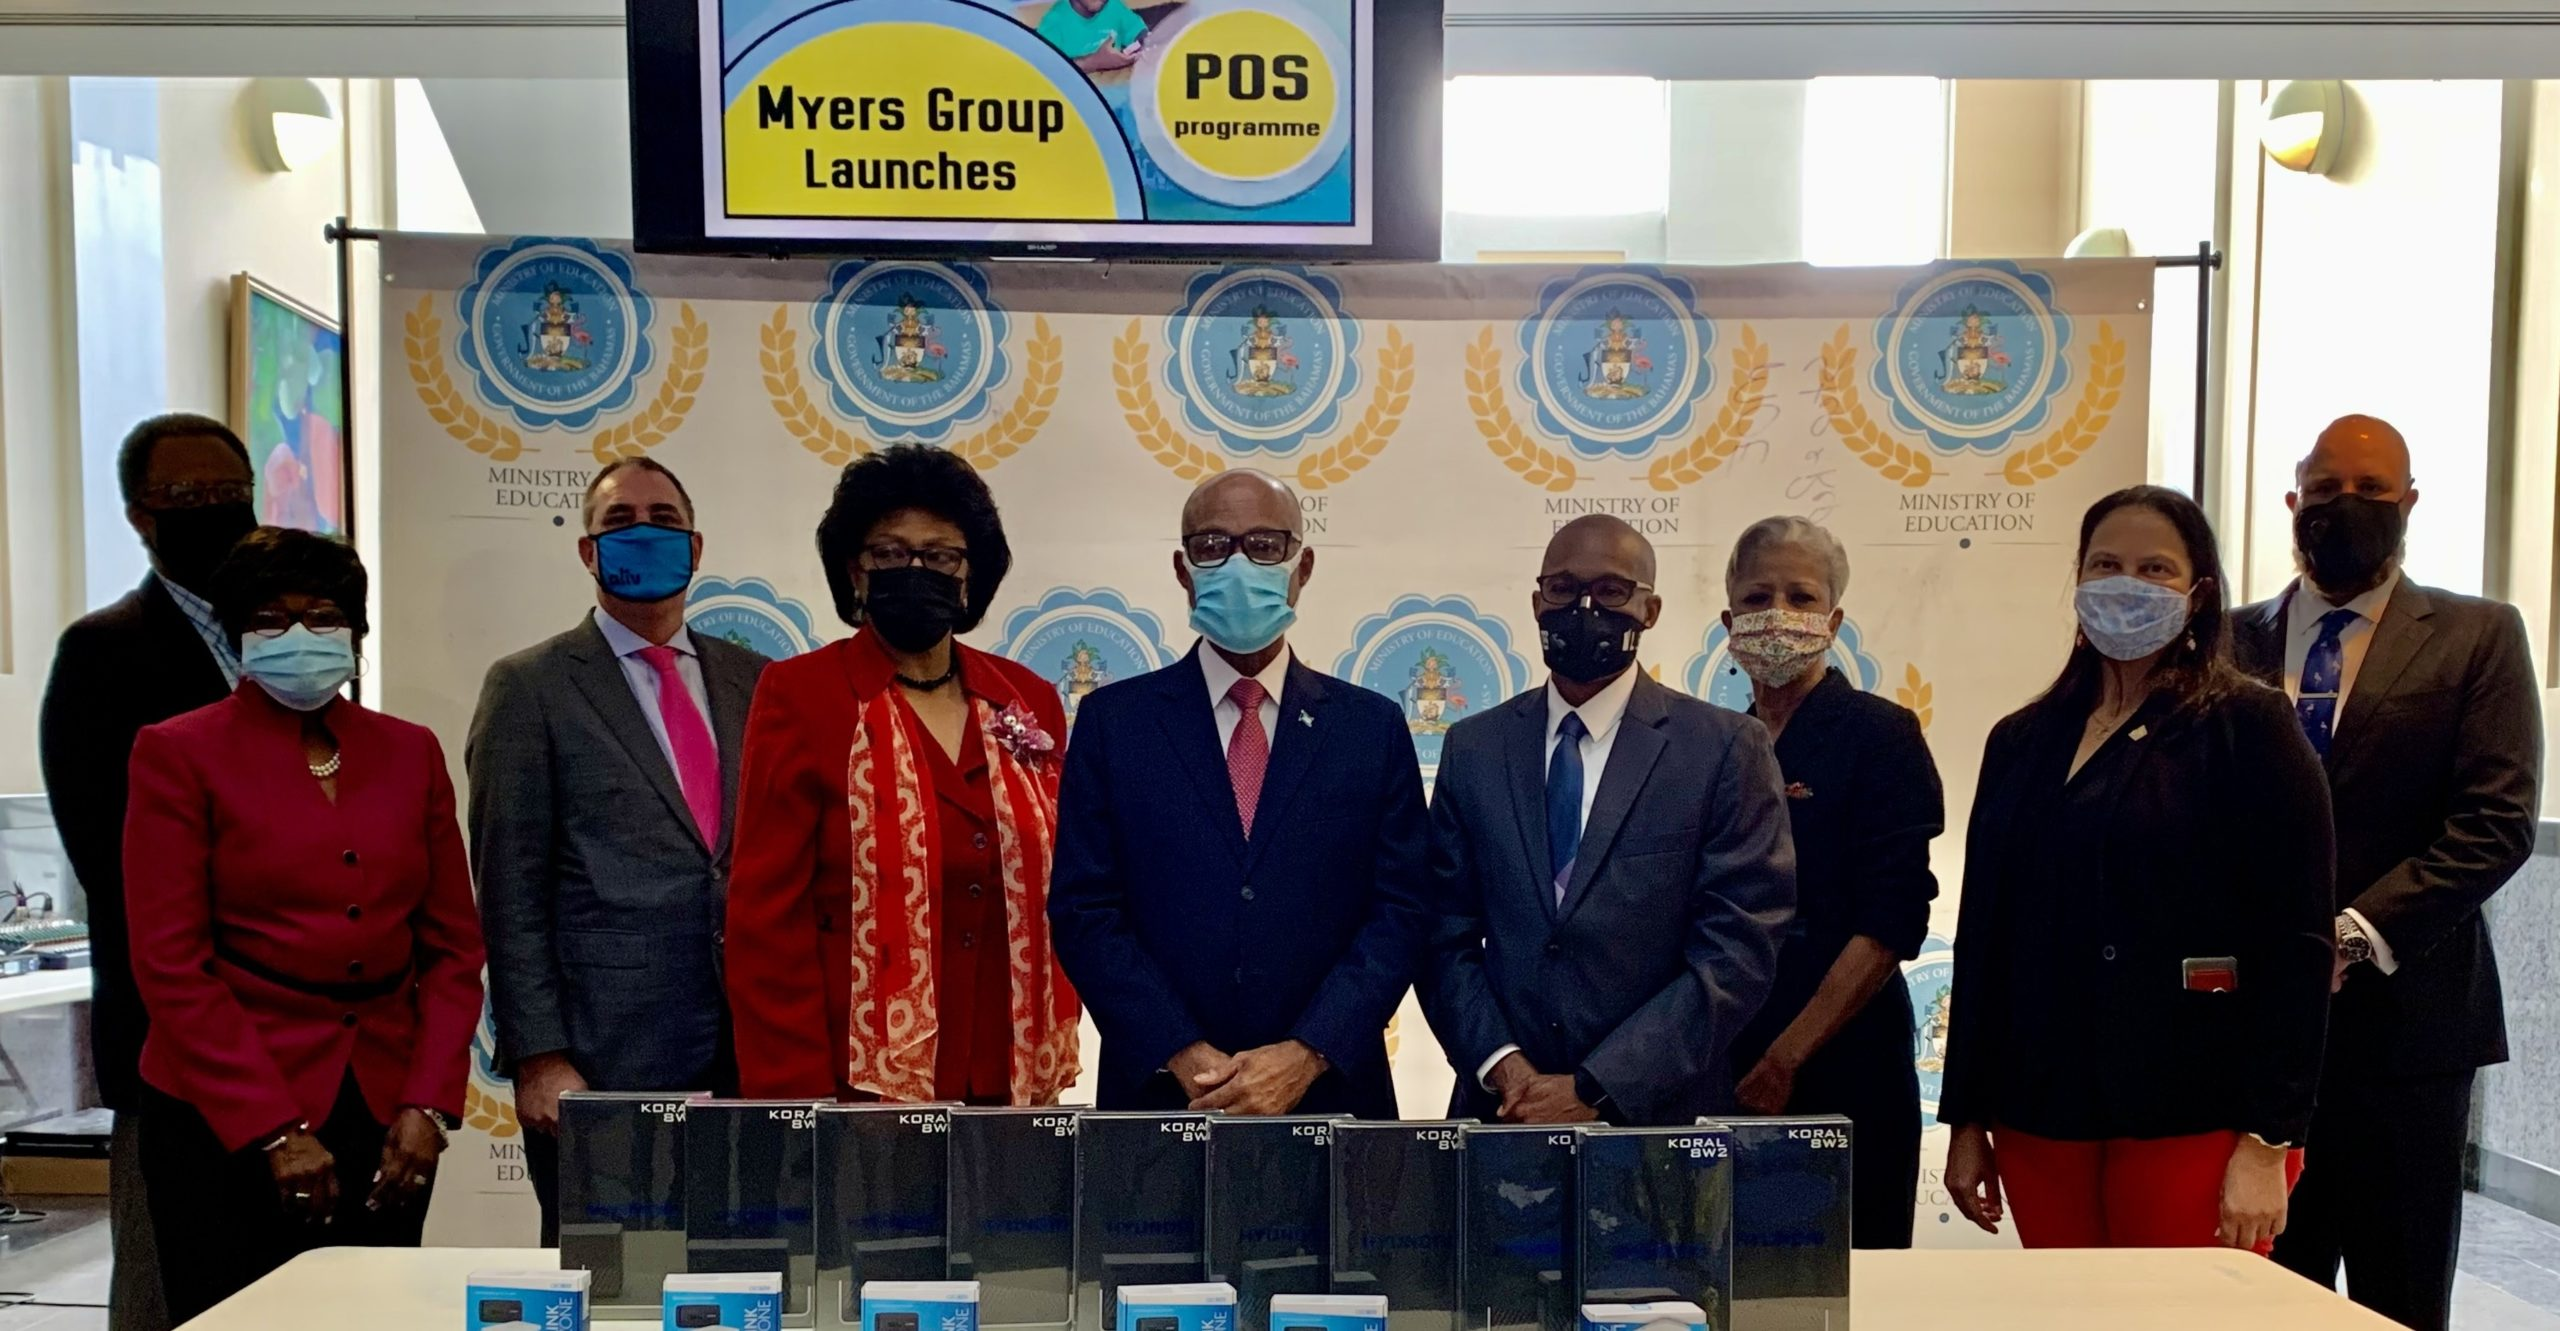 Myers Group donates devices to MOE for students